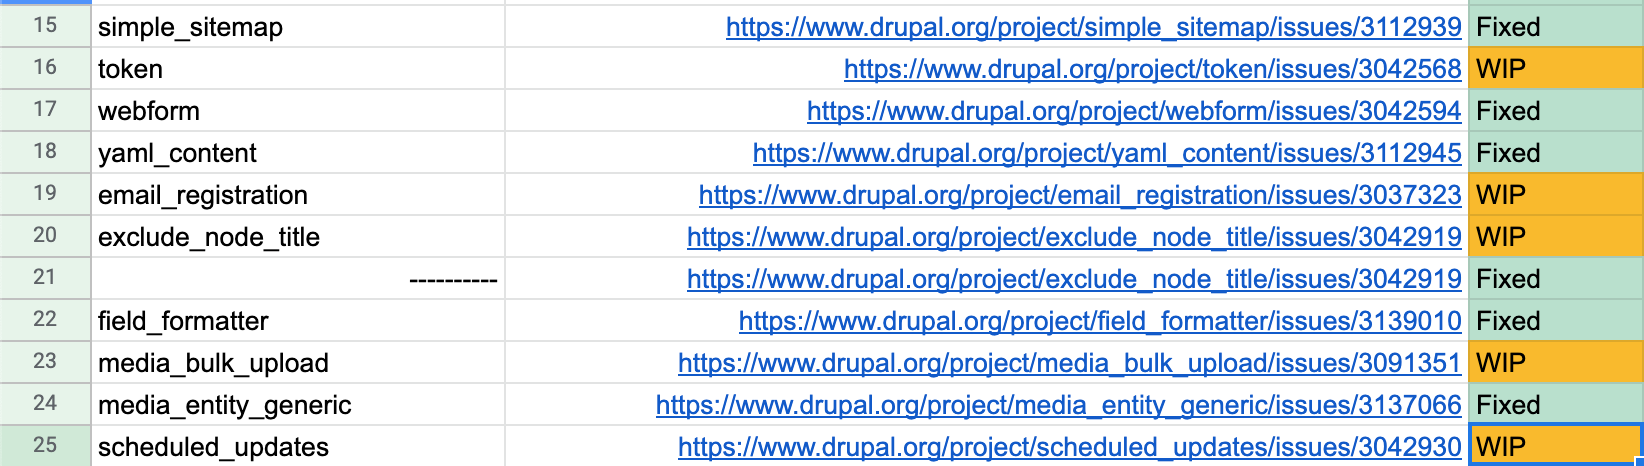 Tracking Drupal 9 issues in spreadsheet